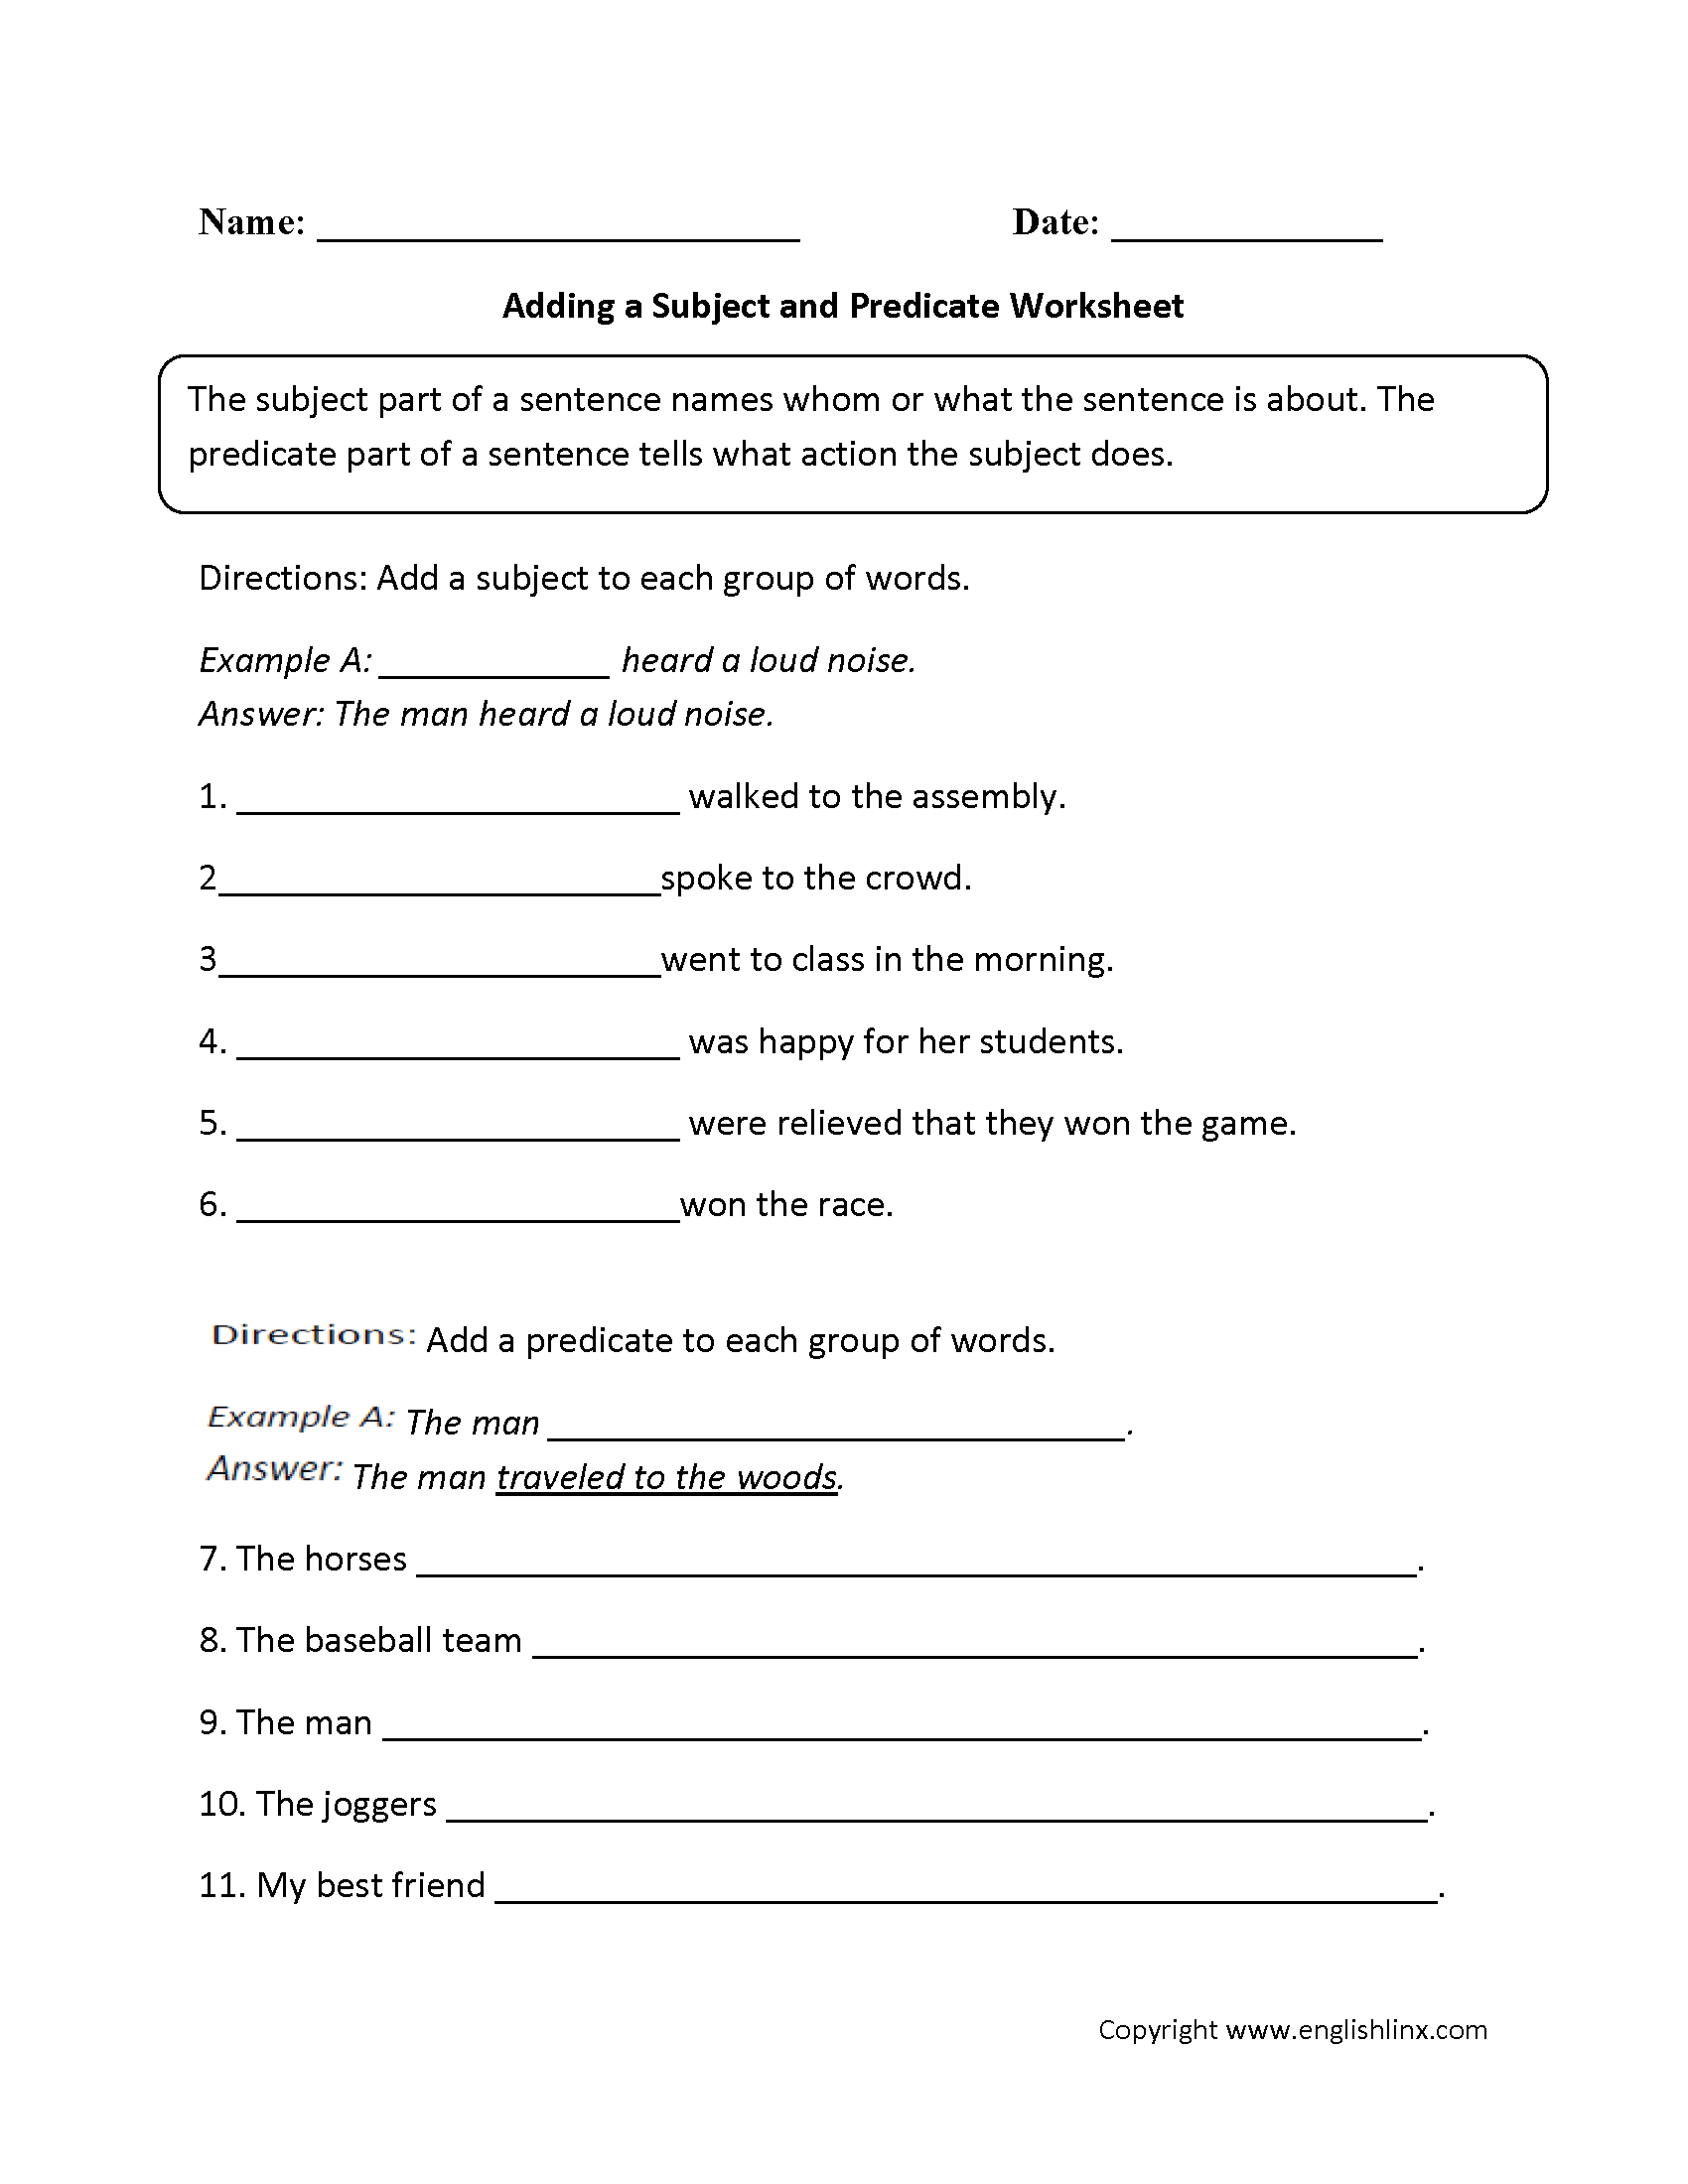 Worksheet Worksheets For Grade 6 englishlinx com subject and predicate worksheets worksheet